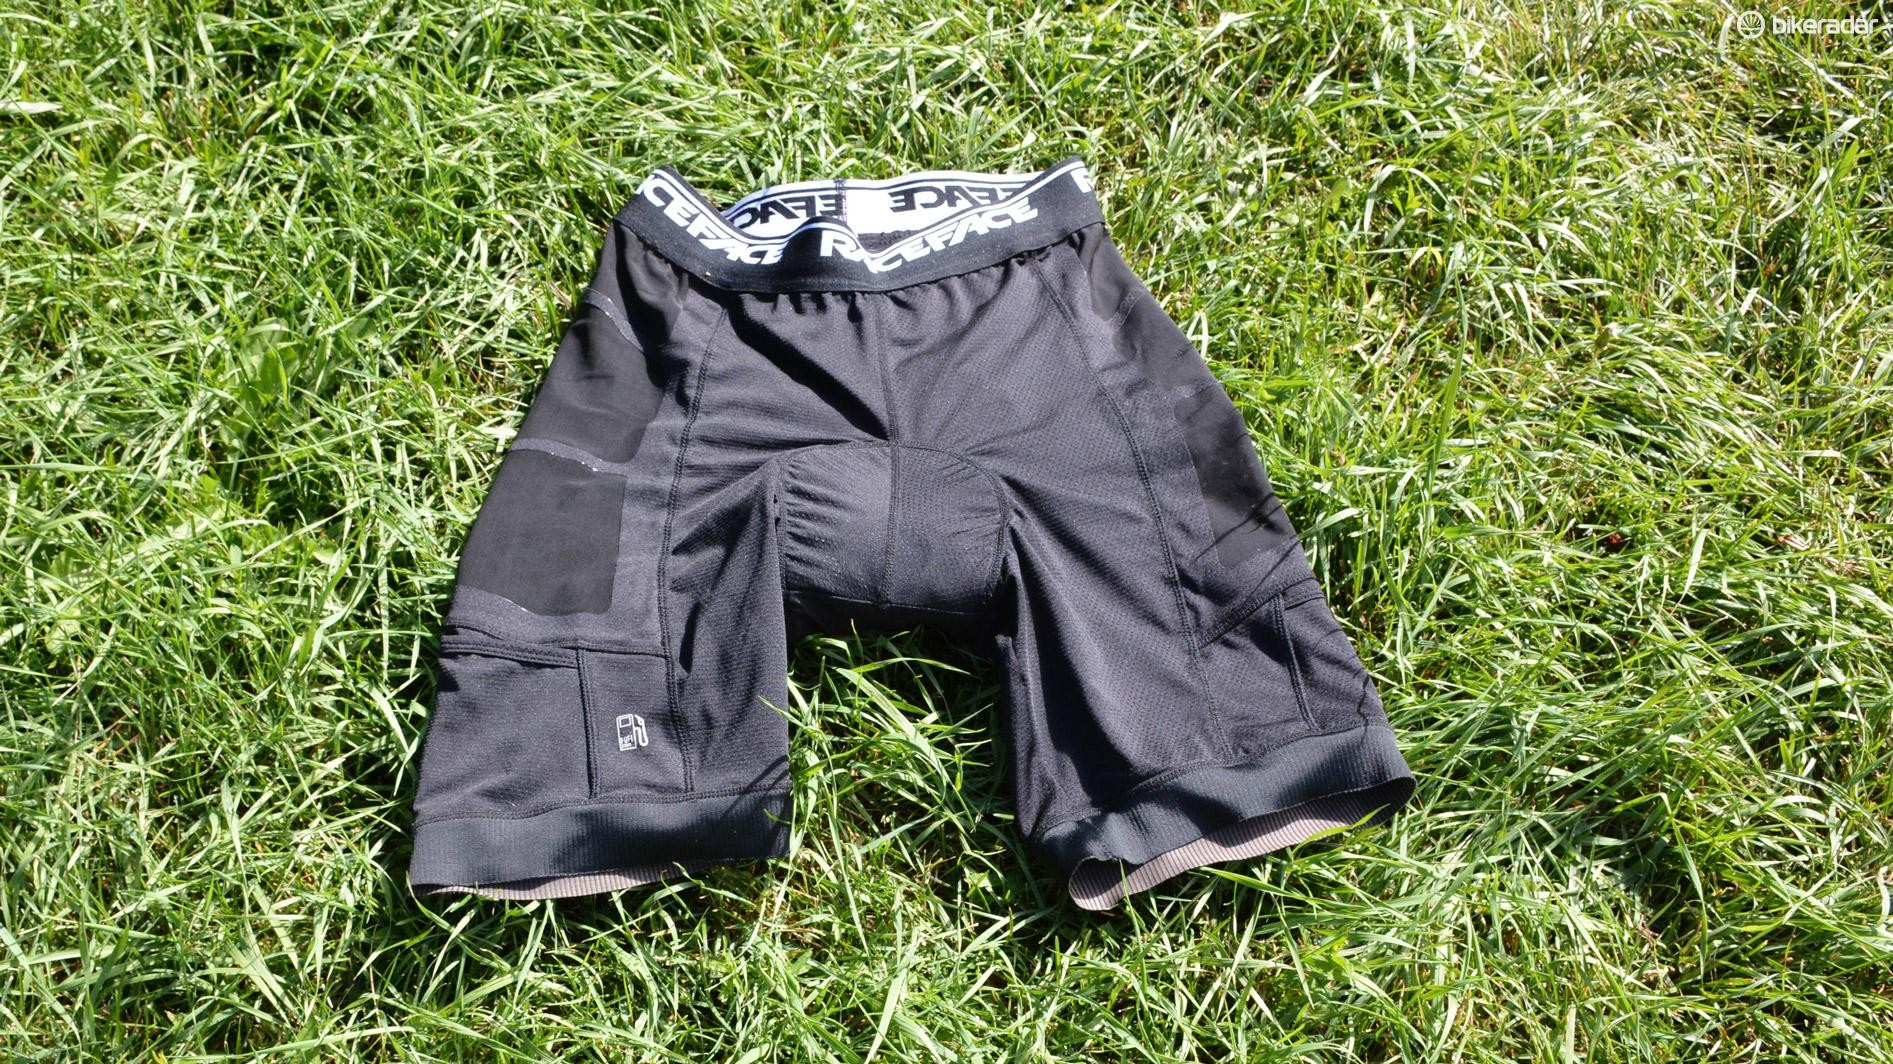 Race Face's Stash Liner shorts have a couple of worthy extras